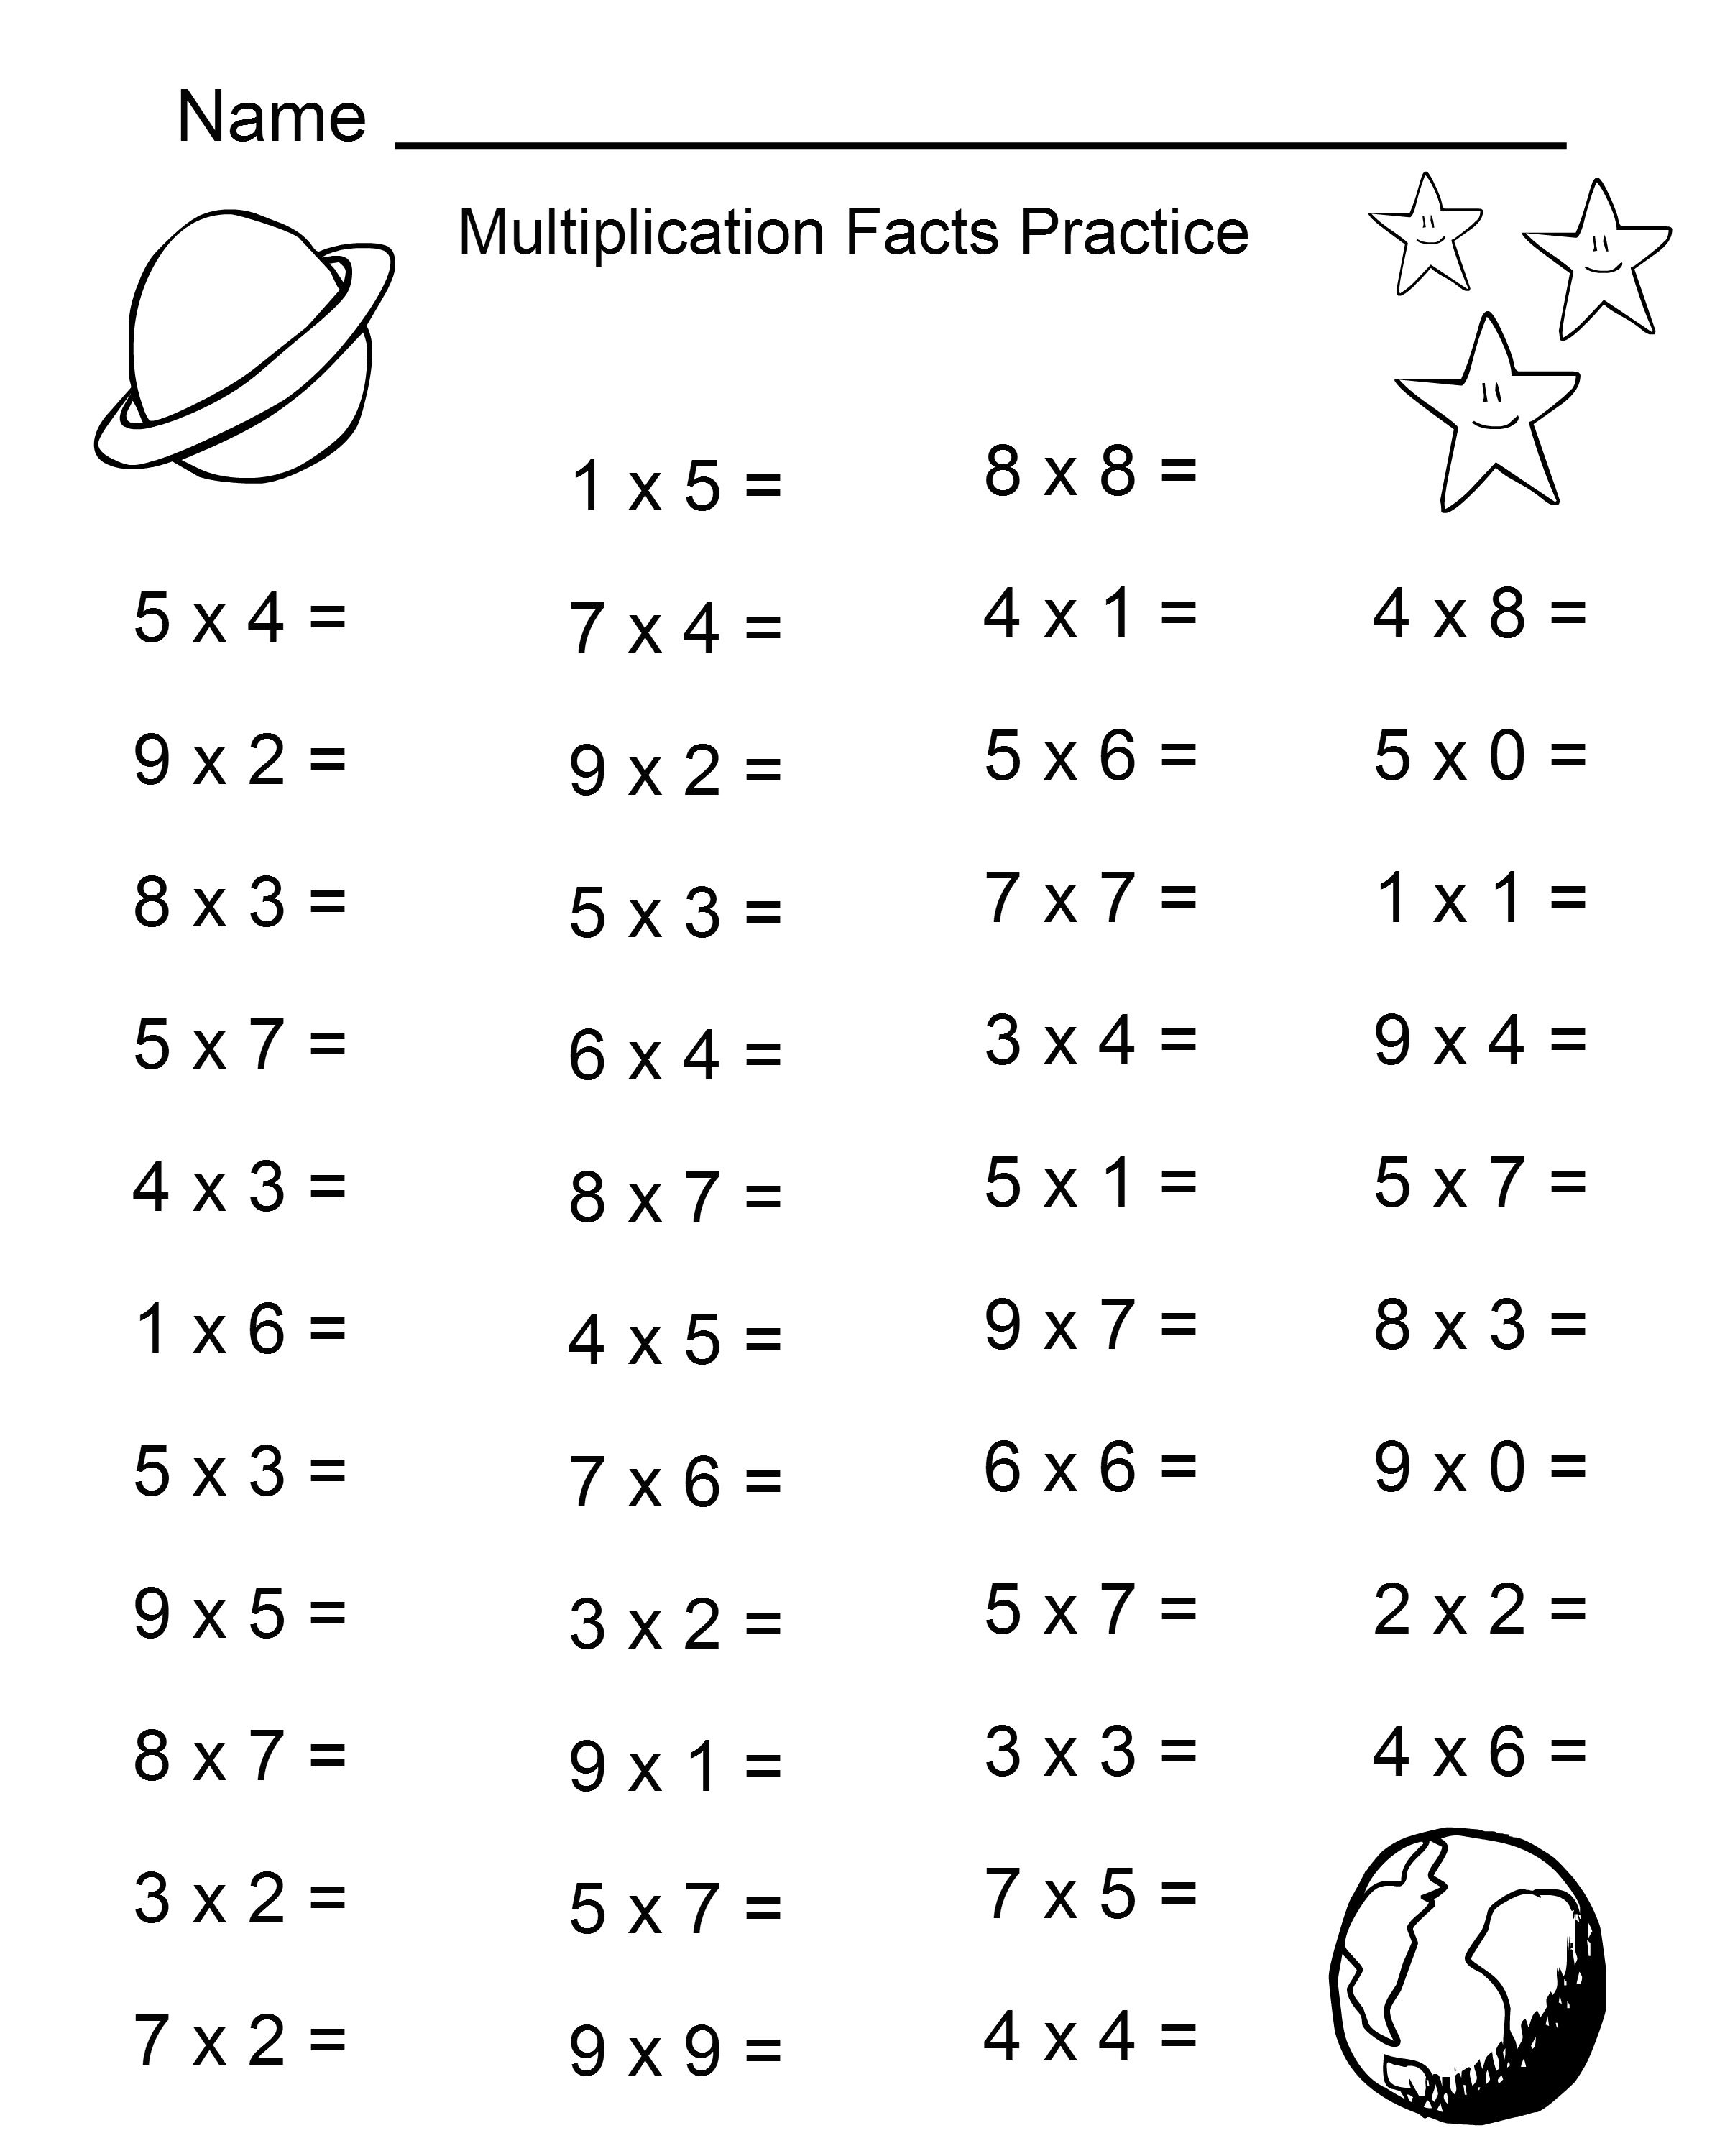 Space Theme - 4Th Grade Math Practice Sheets - Multiplication Facts | 4Th Grade Printable Multiplication Worksheets